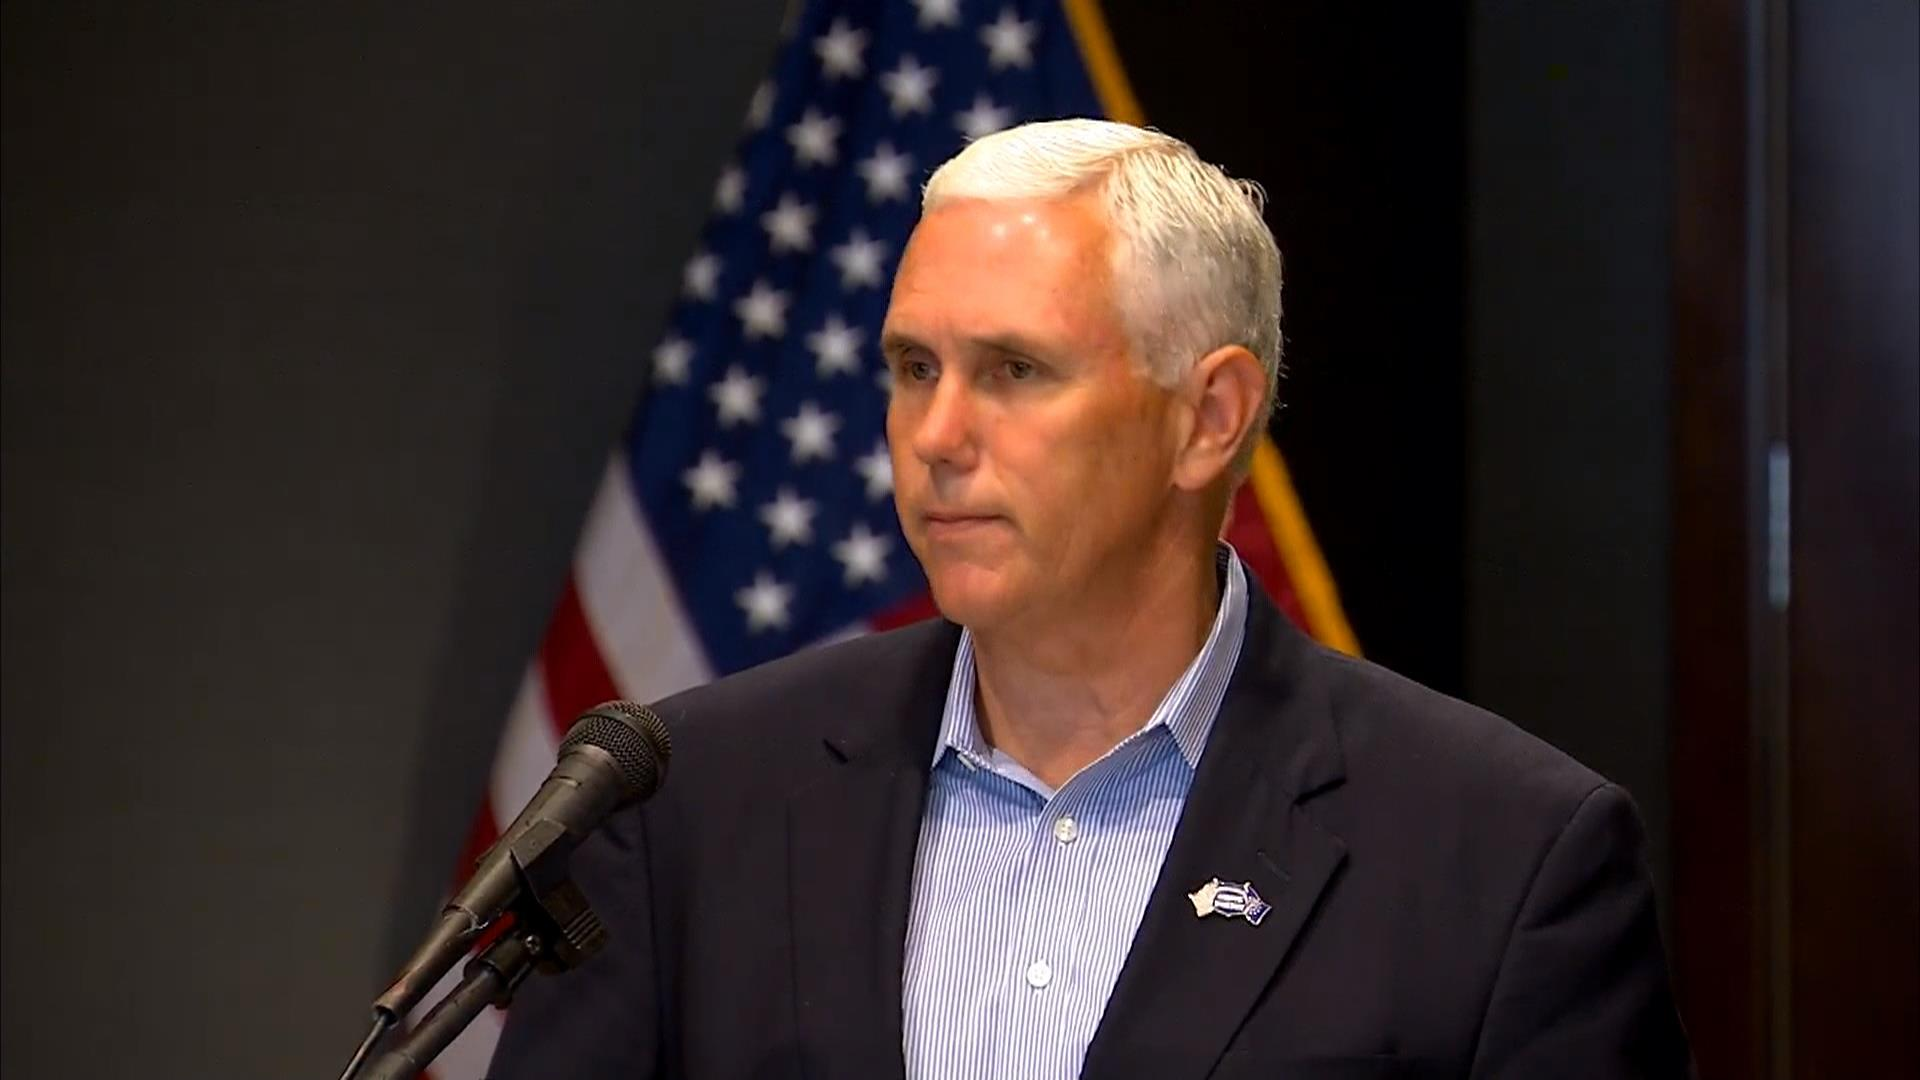 Pence Meets With Trump, Says 'Nothing Was Offered' on VP Front